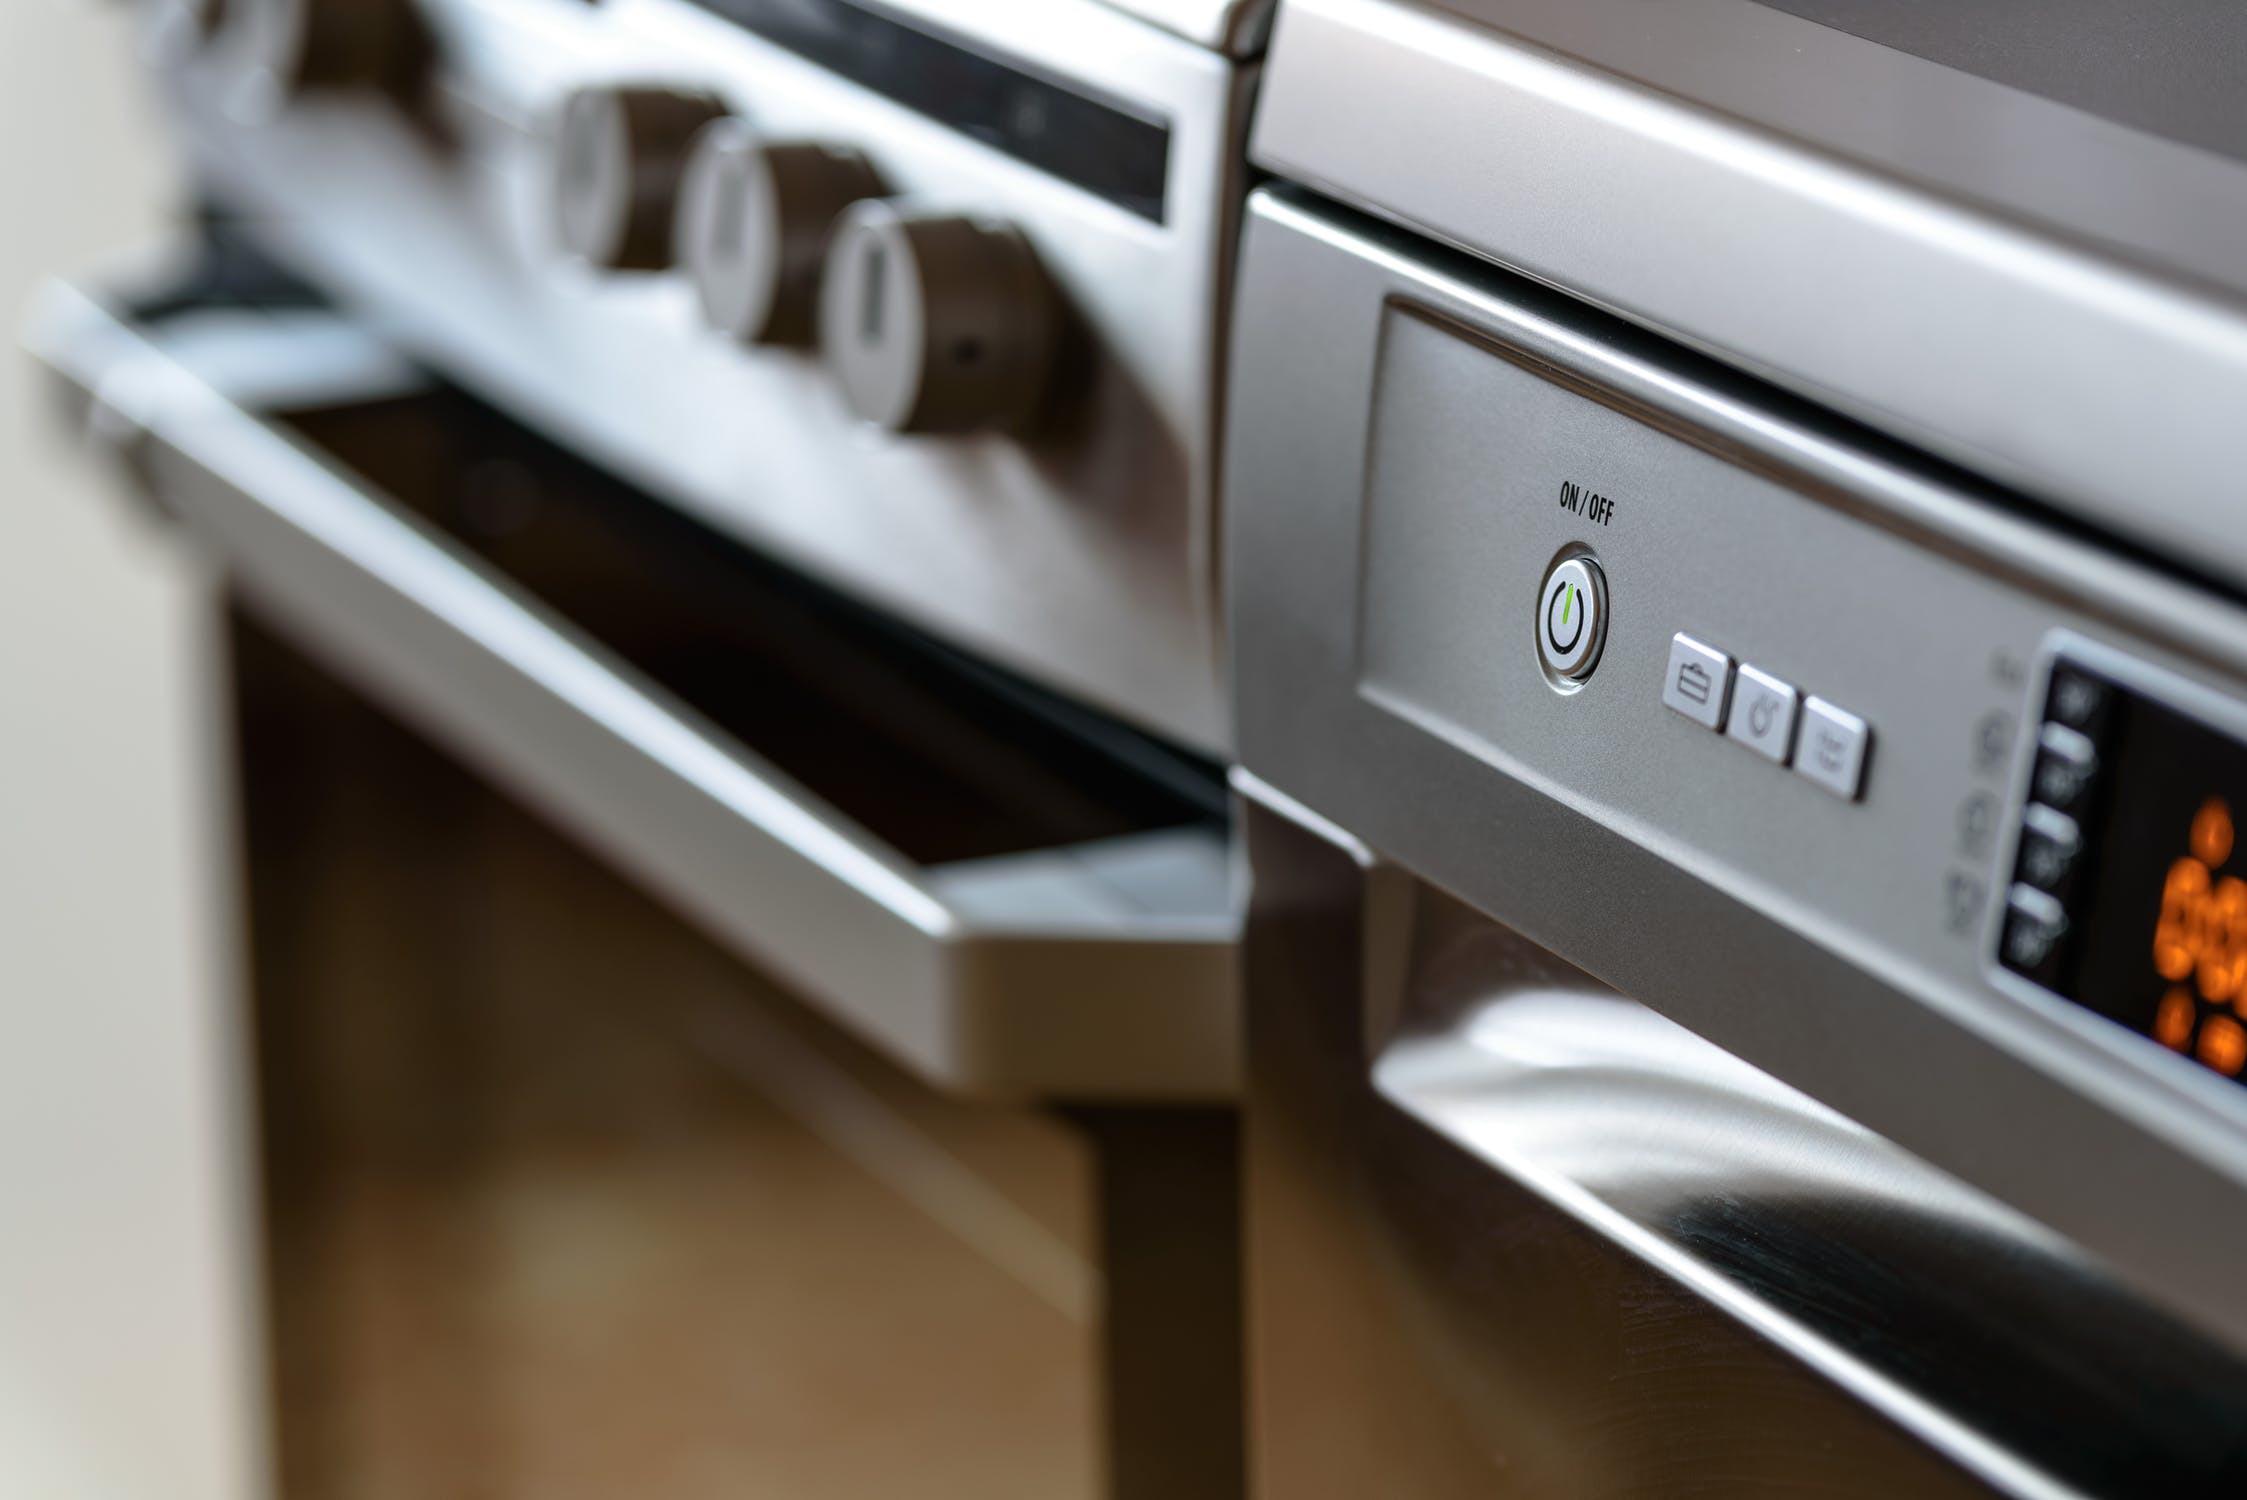 Energy efficient appliances that contribute to environmental sustainability